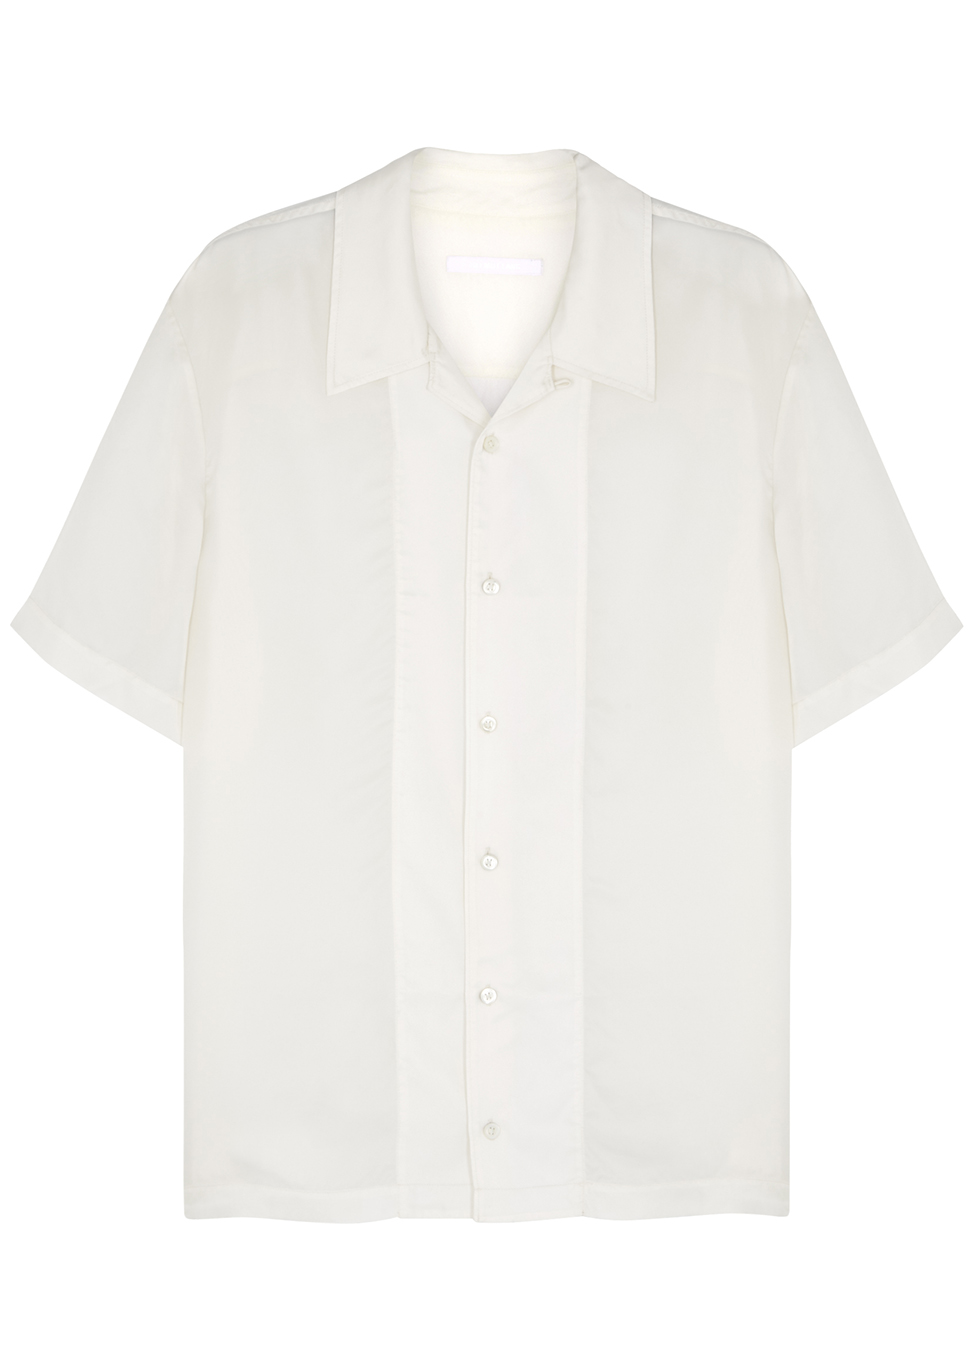 White relaxed cupro shirt - Helmut Lang